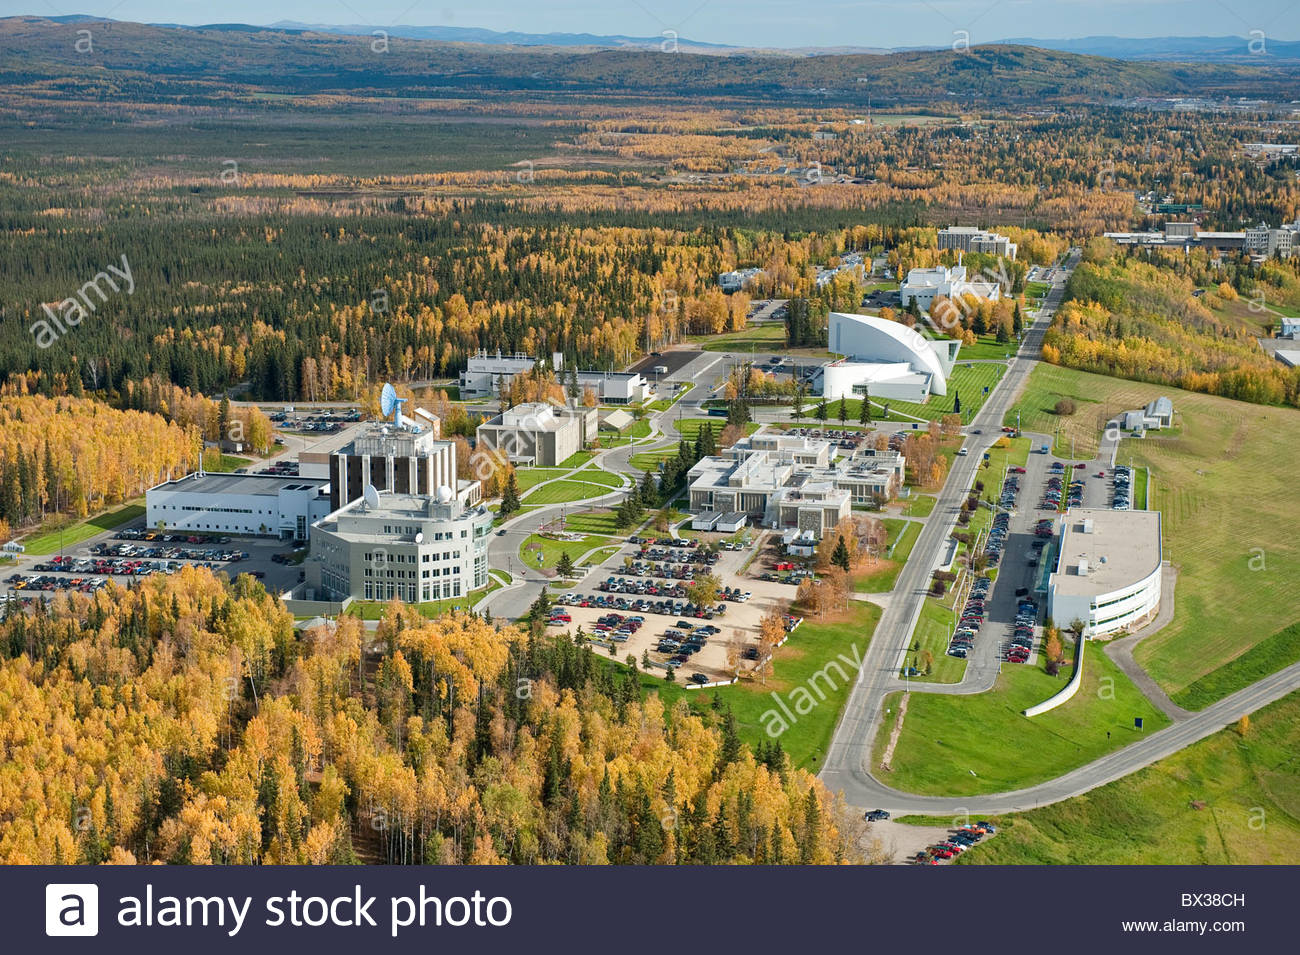 Alaska Aerial View Of University Of Alaska Fairbanks. Next Next Generation Sequencing. Cell Phone Coupons Codes School Of Technology. California Garage Doors Security Companies Md. Buy Stock In Marijuana Voicemail Setup Iphone. International Relations Education. Orthodontist In California New Vision Laser. Top 10 Online Universities In The World. Insurance Cost For New Drivers